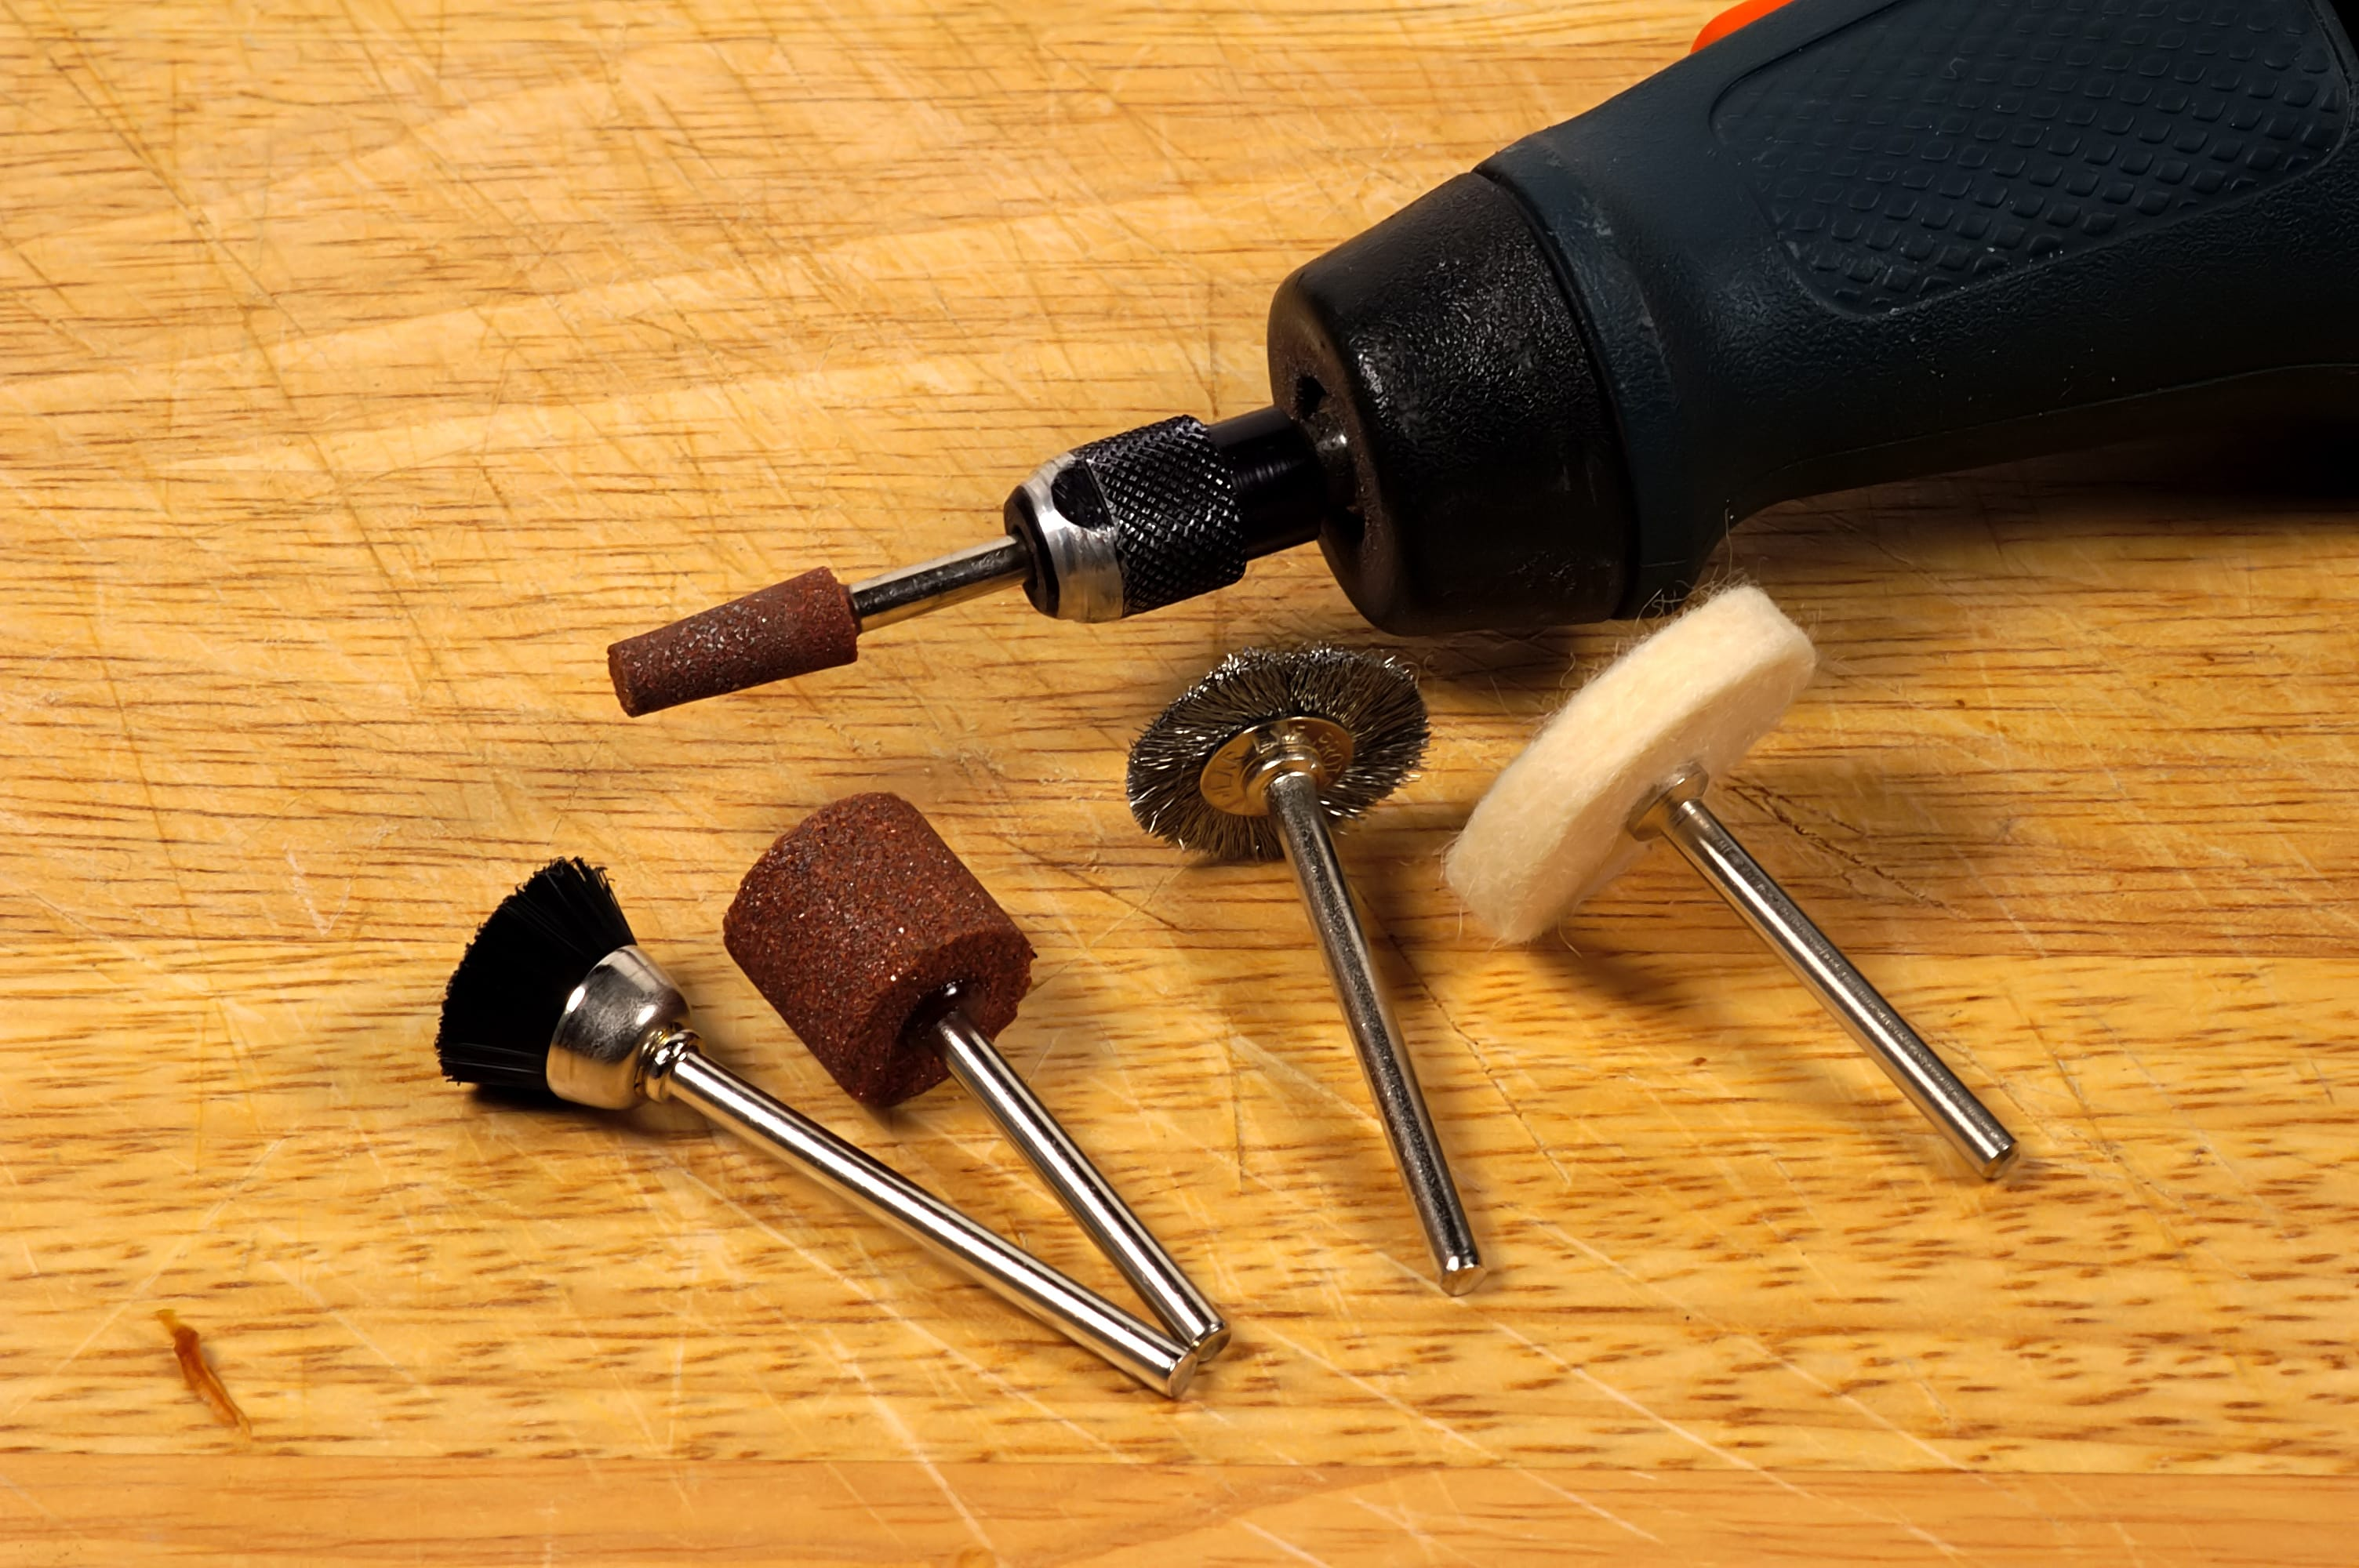 rotary tool and attachments